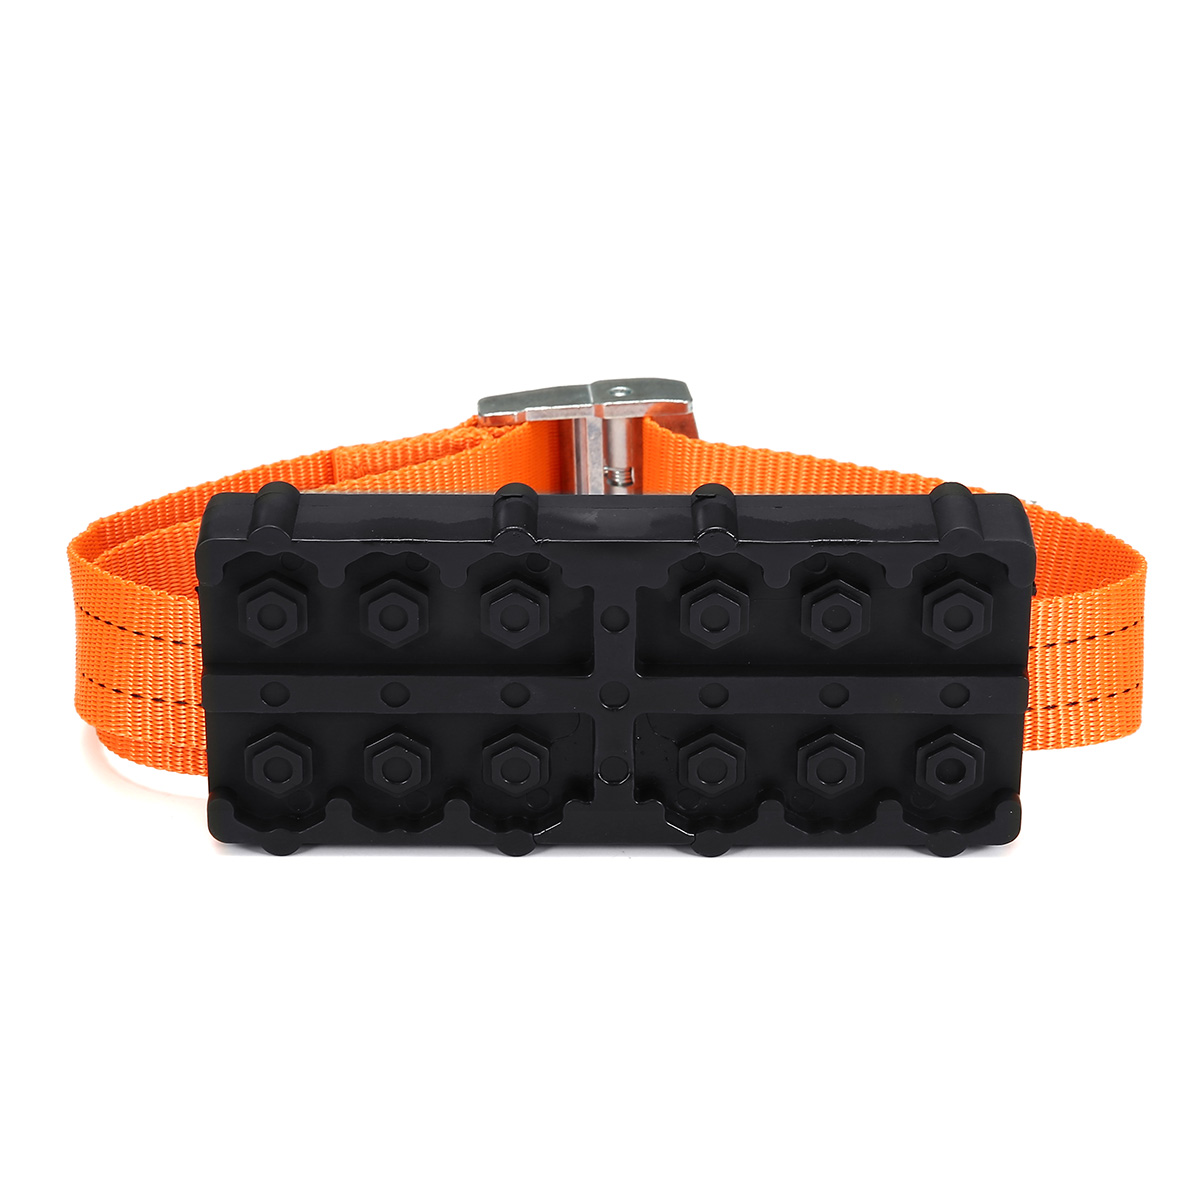 Car Tire Anti-Skid Block Vehicle Emergency Snow Mud Sand Chain U